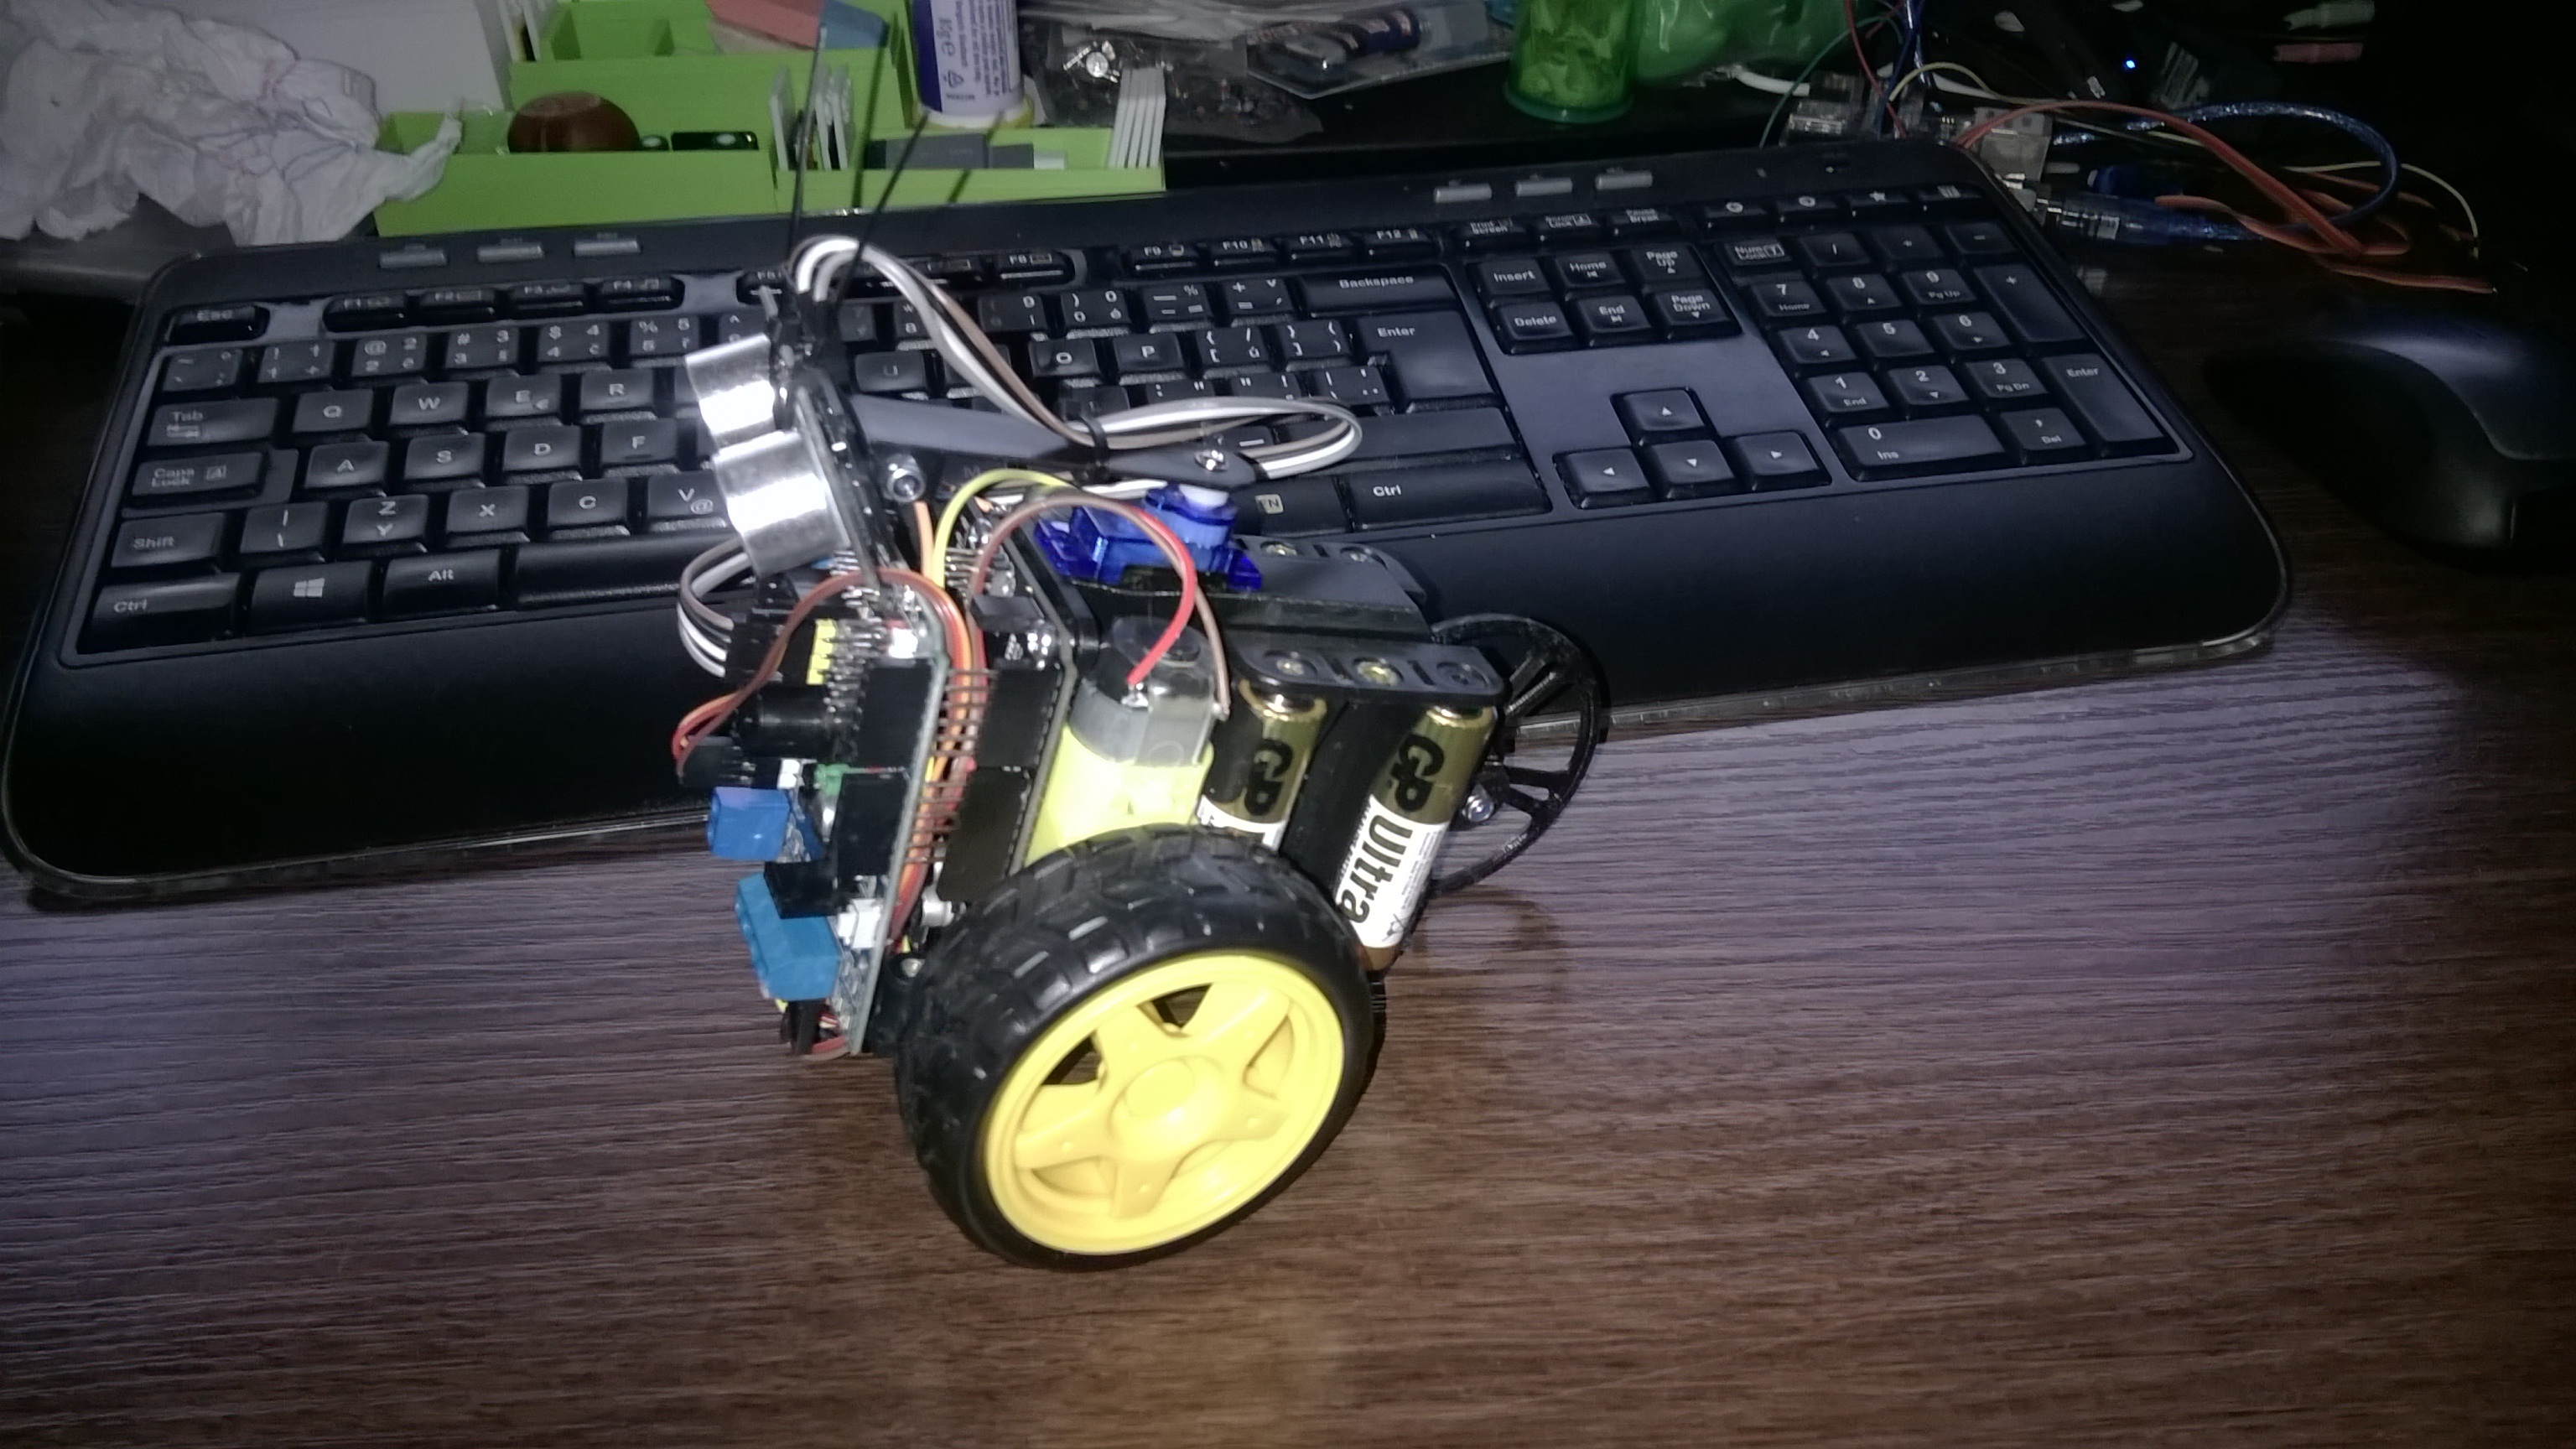 SCRU-FE: Simple C++ Robot with Ultra-sonic Sensor for